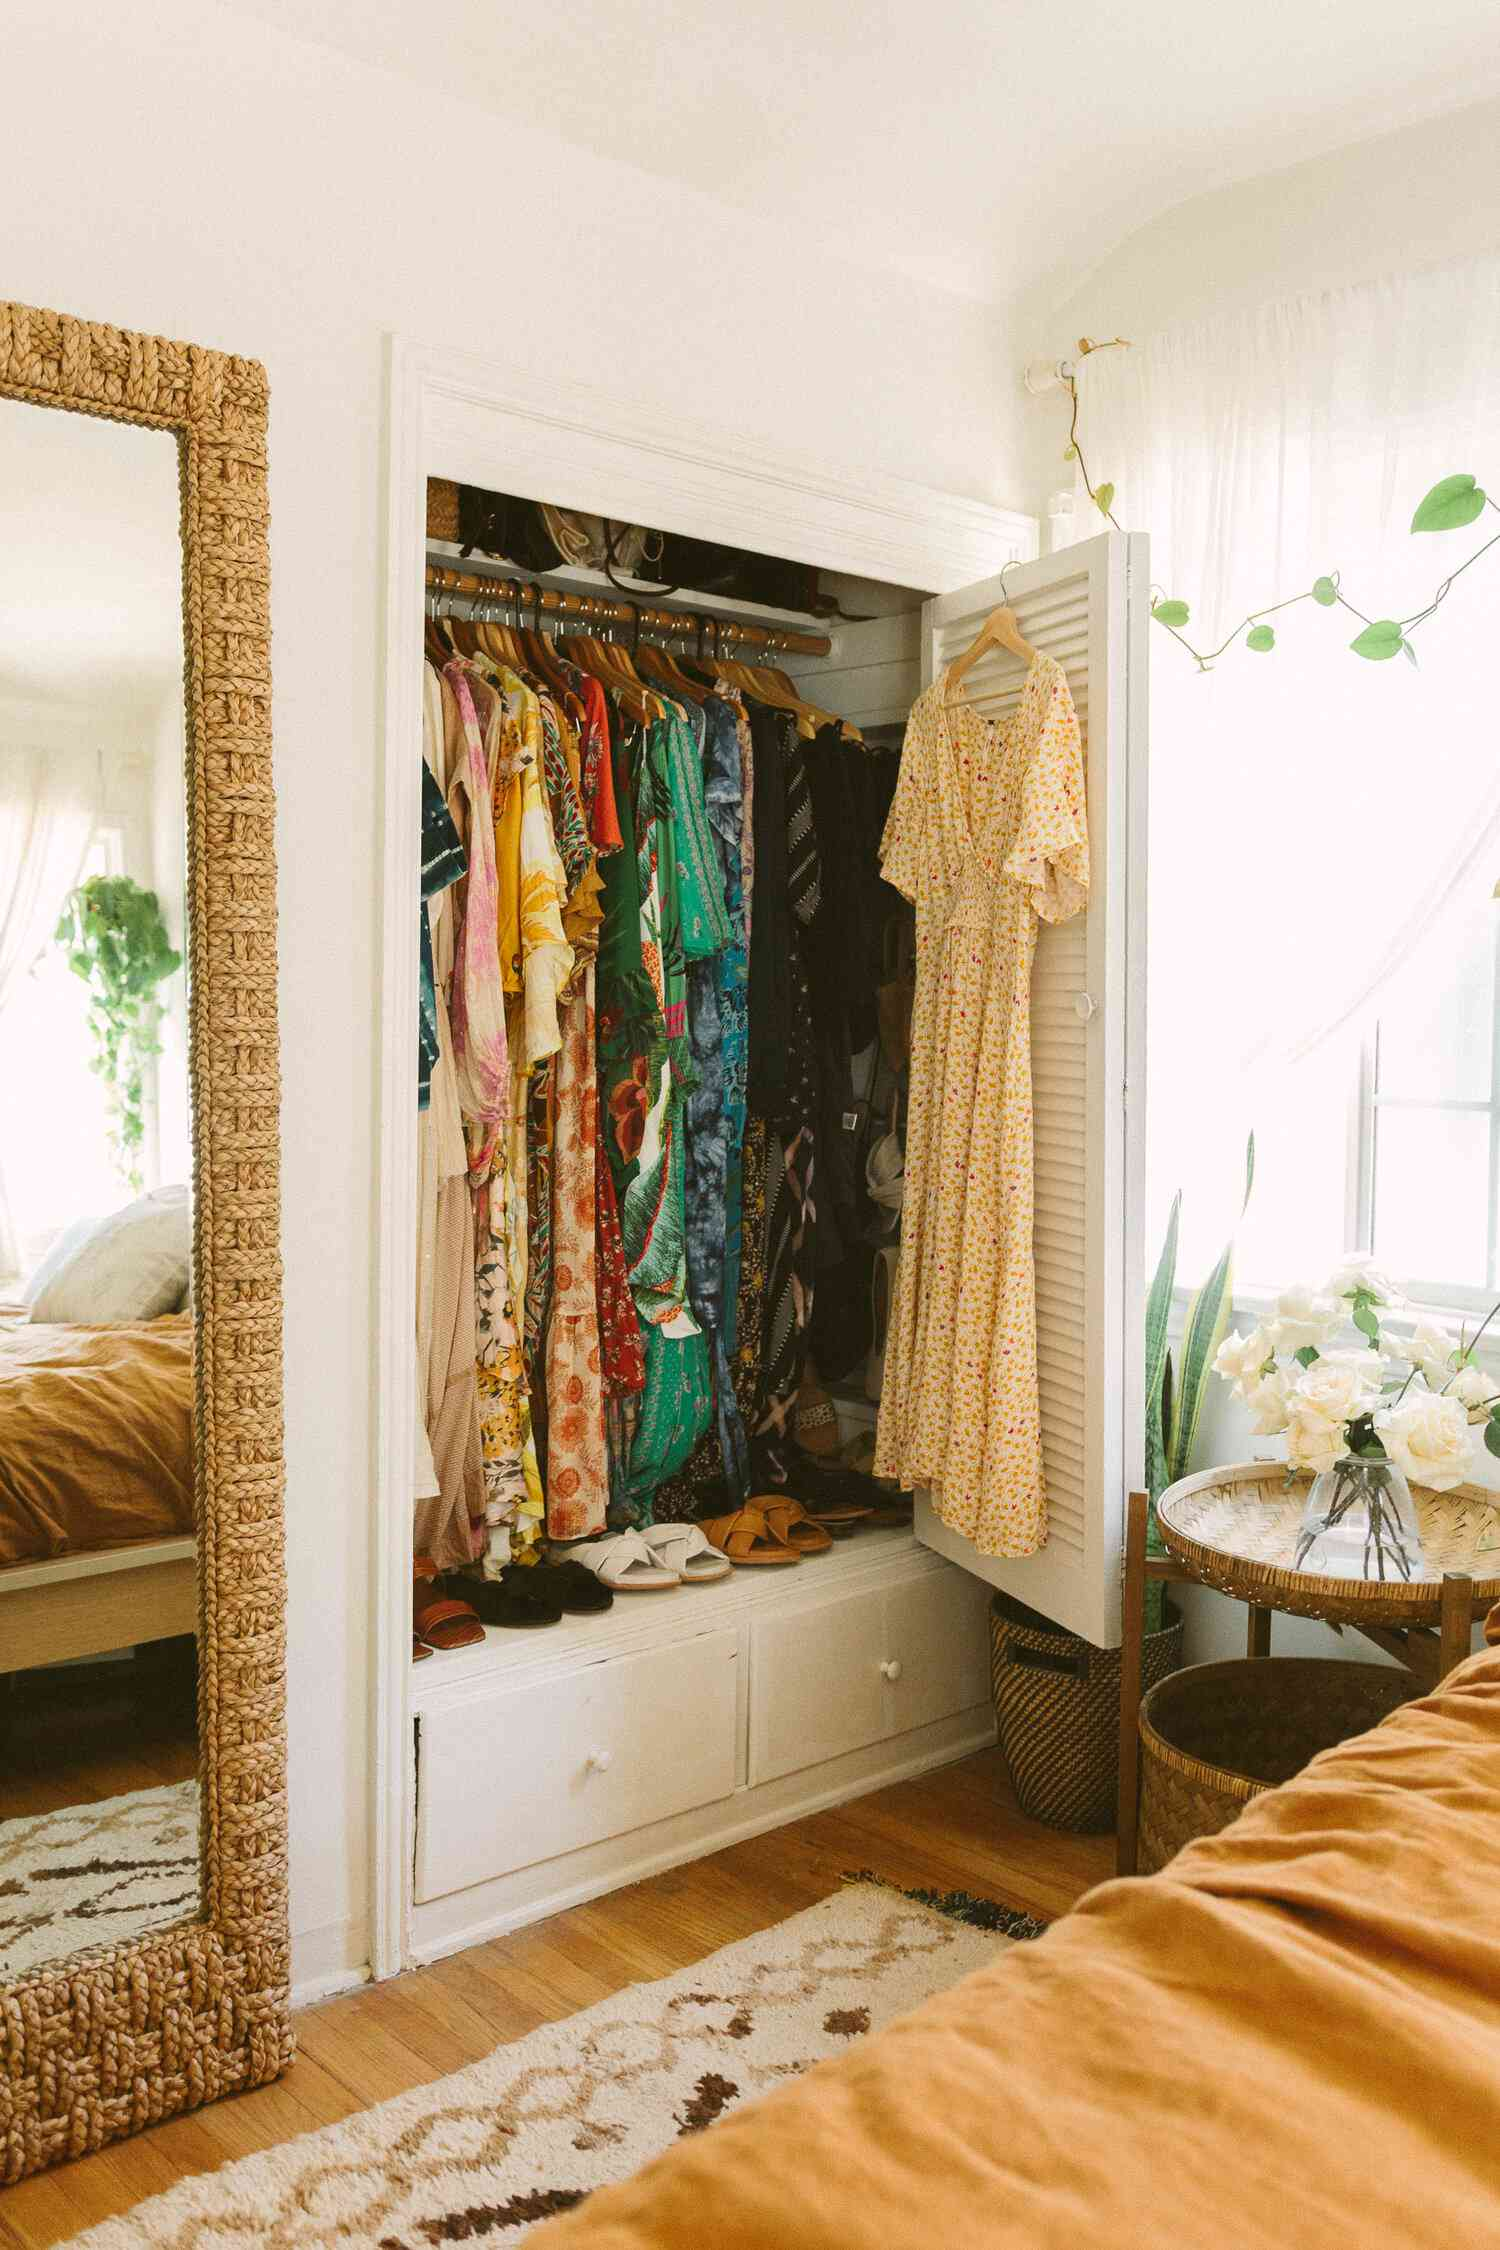 Colorful closet in a bright, sunny bedroom